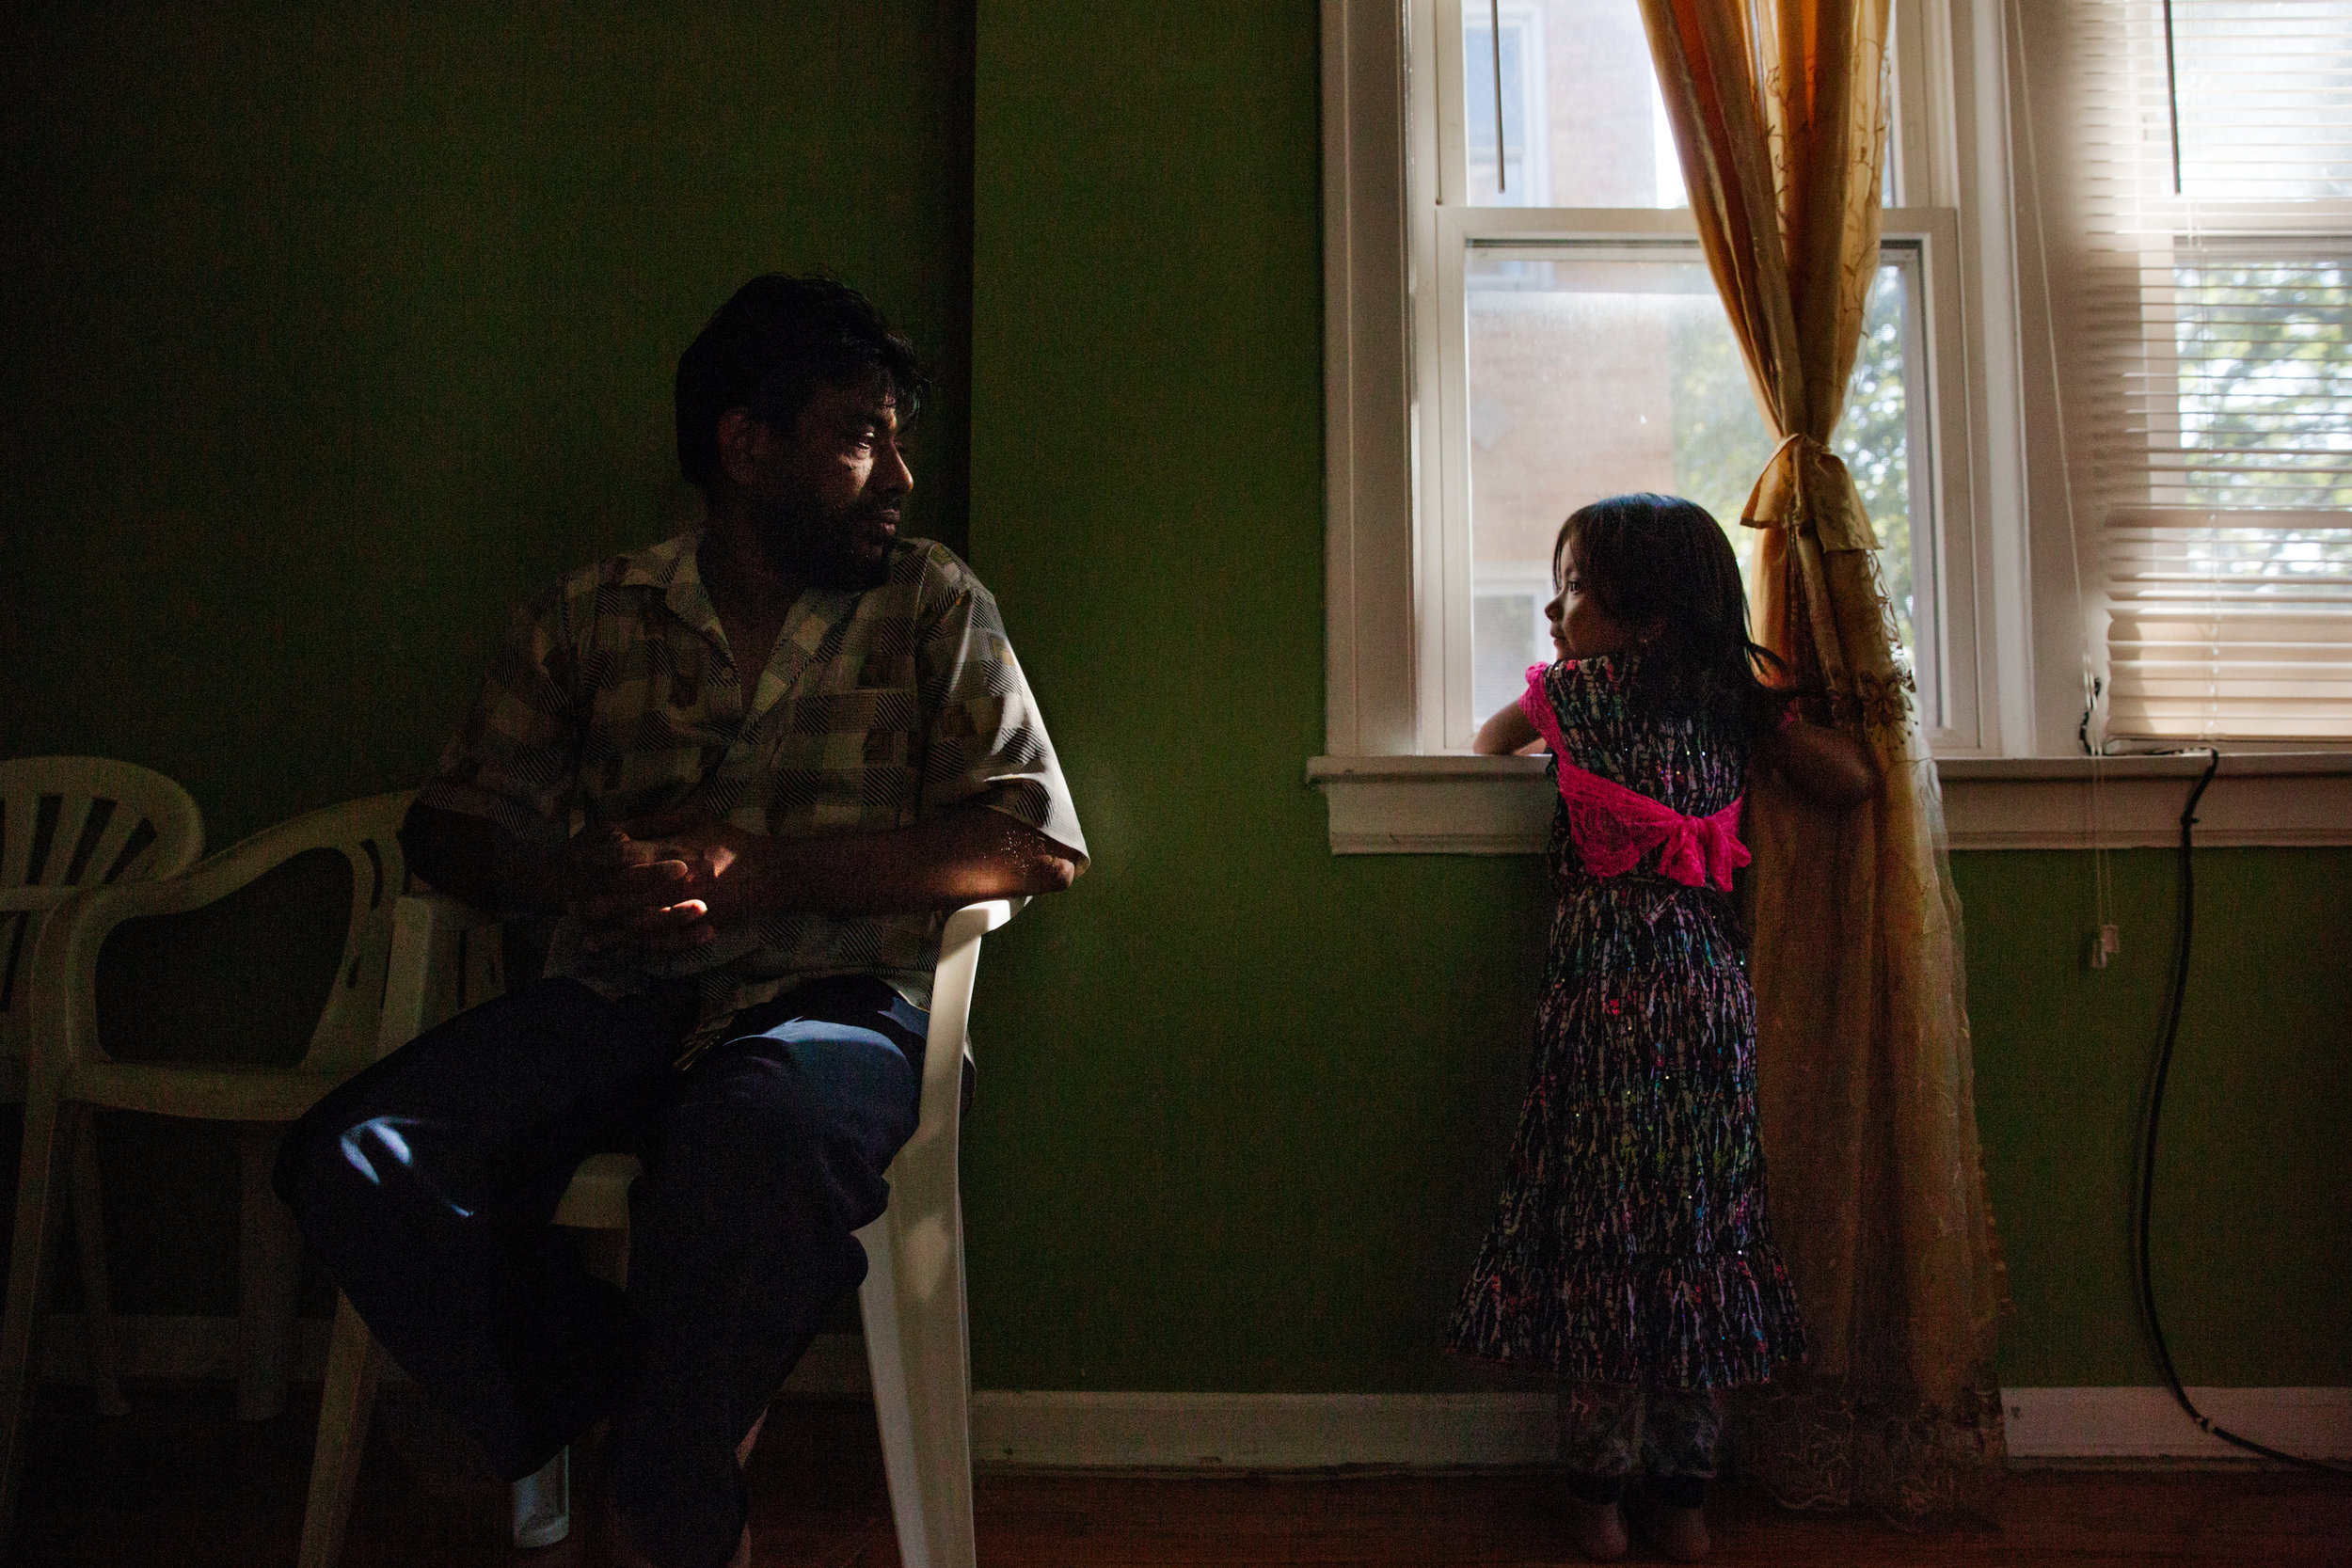 Abdul Aziz, 39, at home in Rogers Park, with his daughter, Arina, 4. As a teenager, he left his family in Myanmar's Rakhine State, where the Rohingya are concentrated, to find safety in Malaysia.